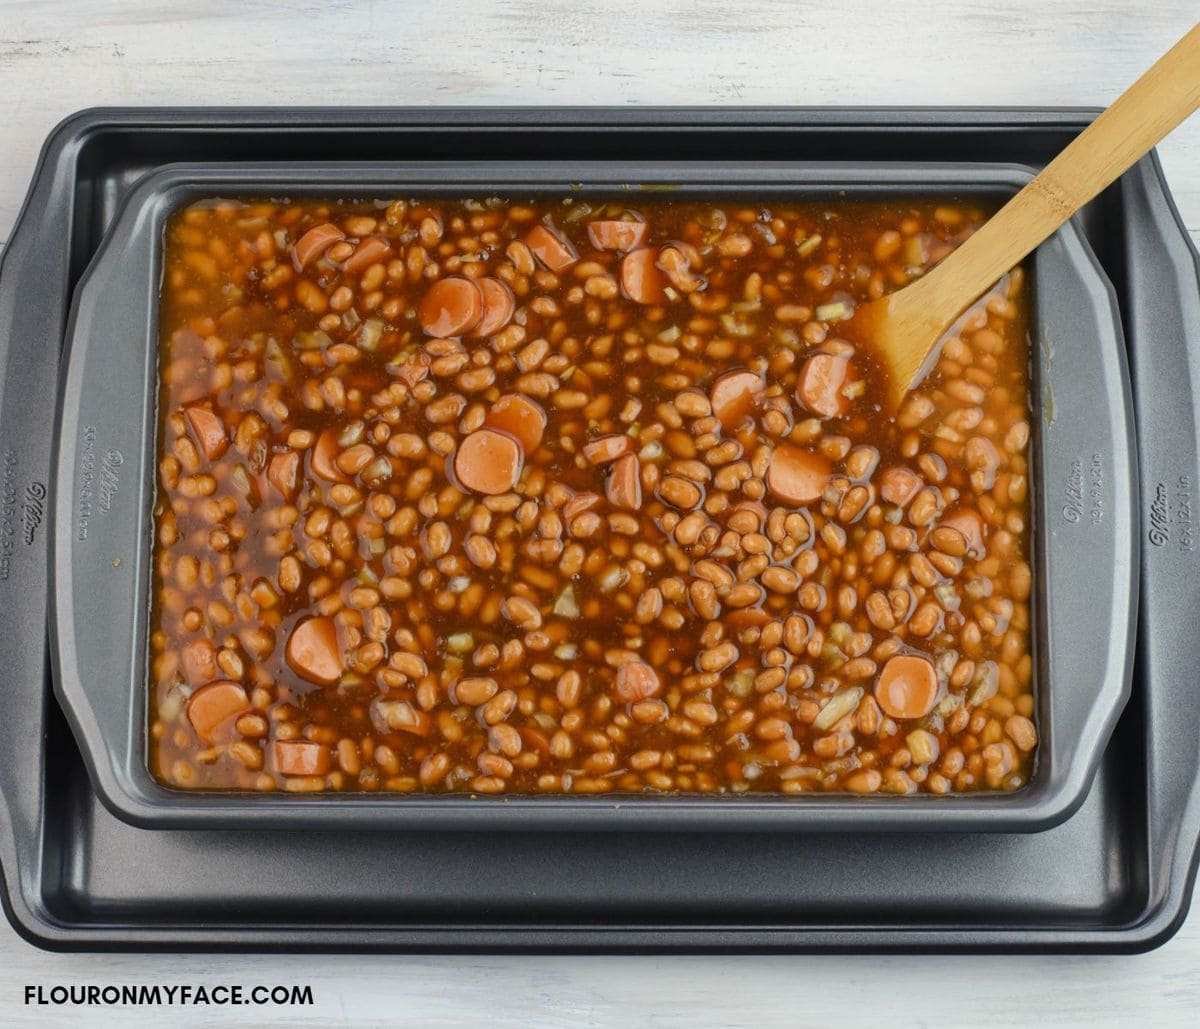 Baked beans ingredients in a large baking pan.